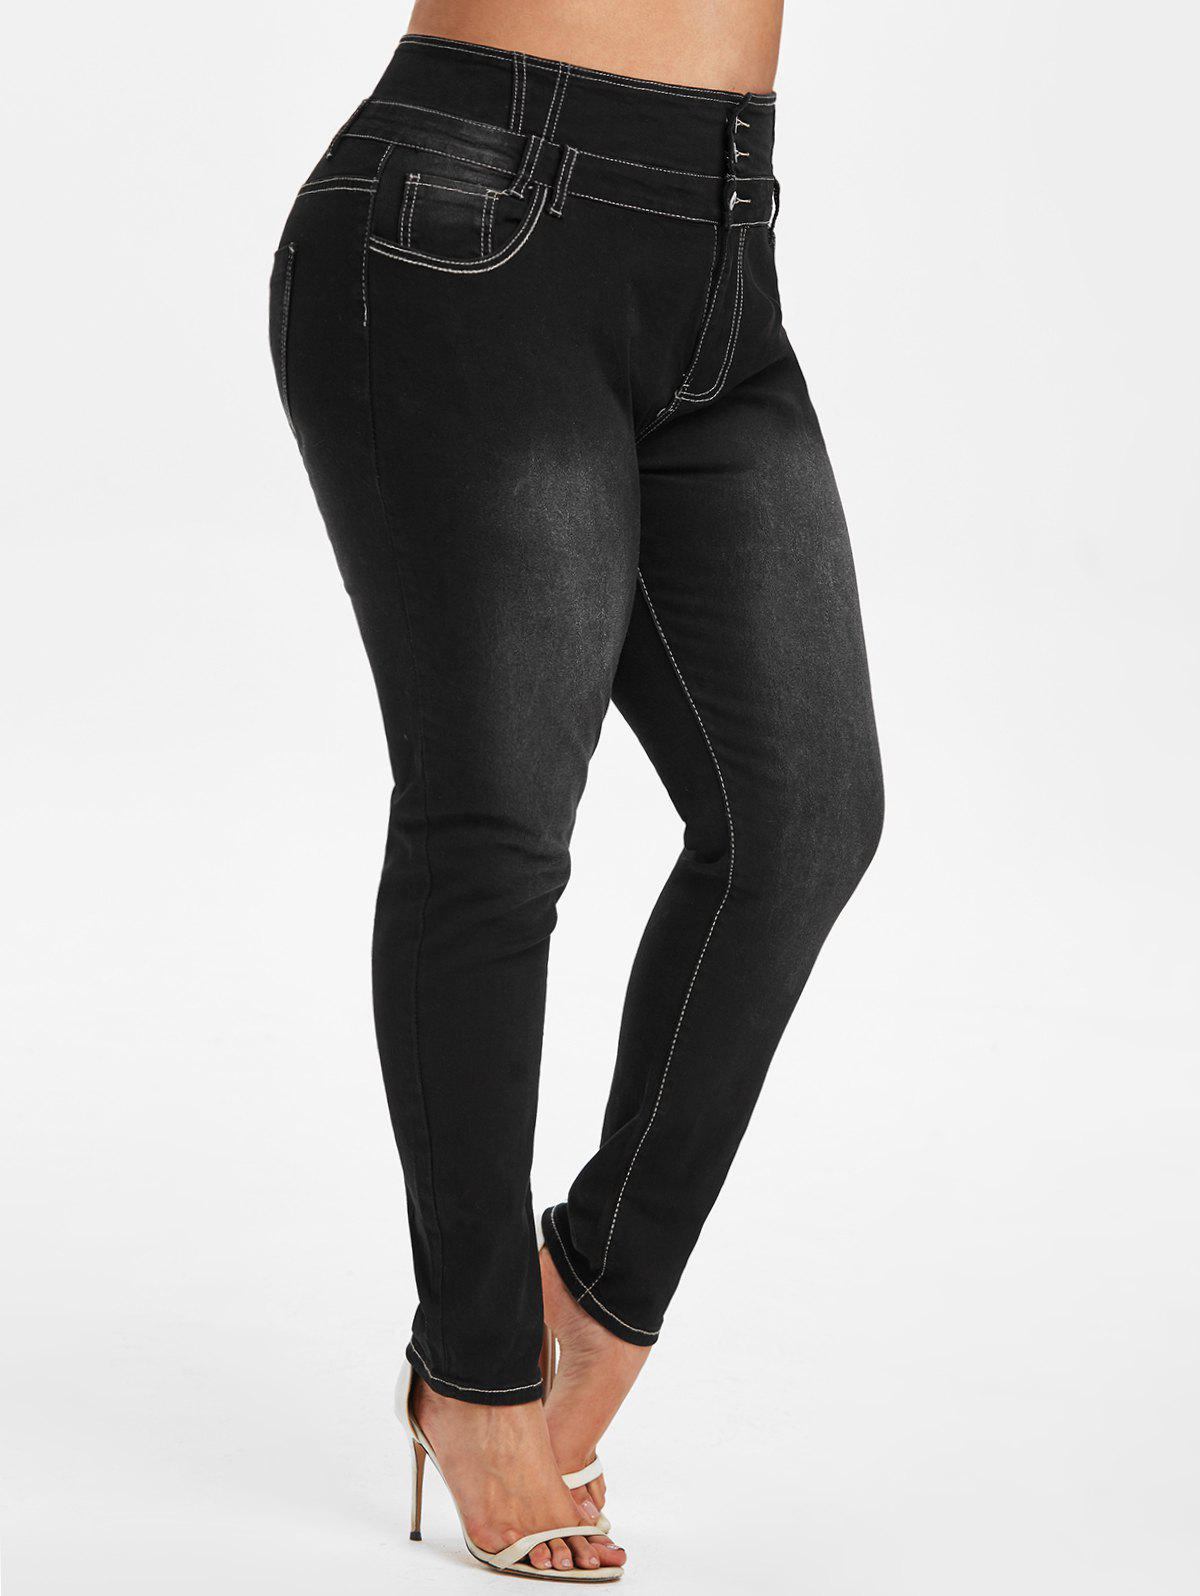 High Waisted Pockets Plus Size Skinny Jeans - BLACK 2X